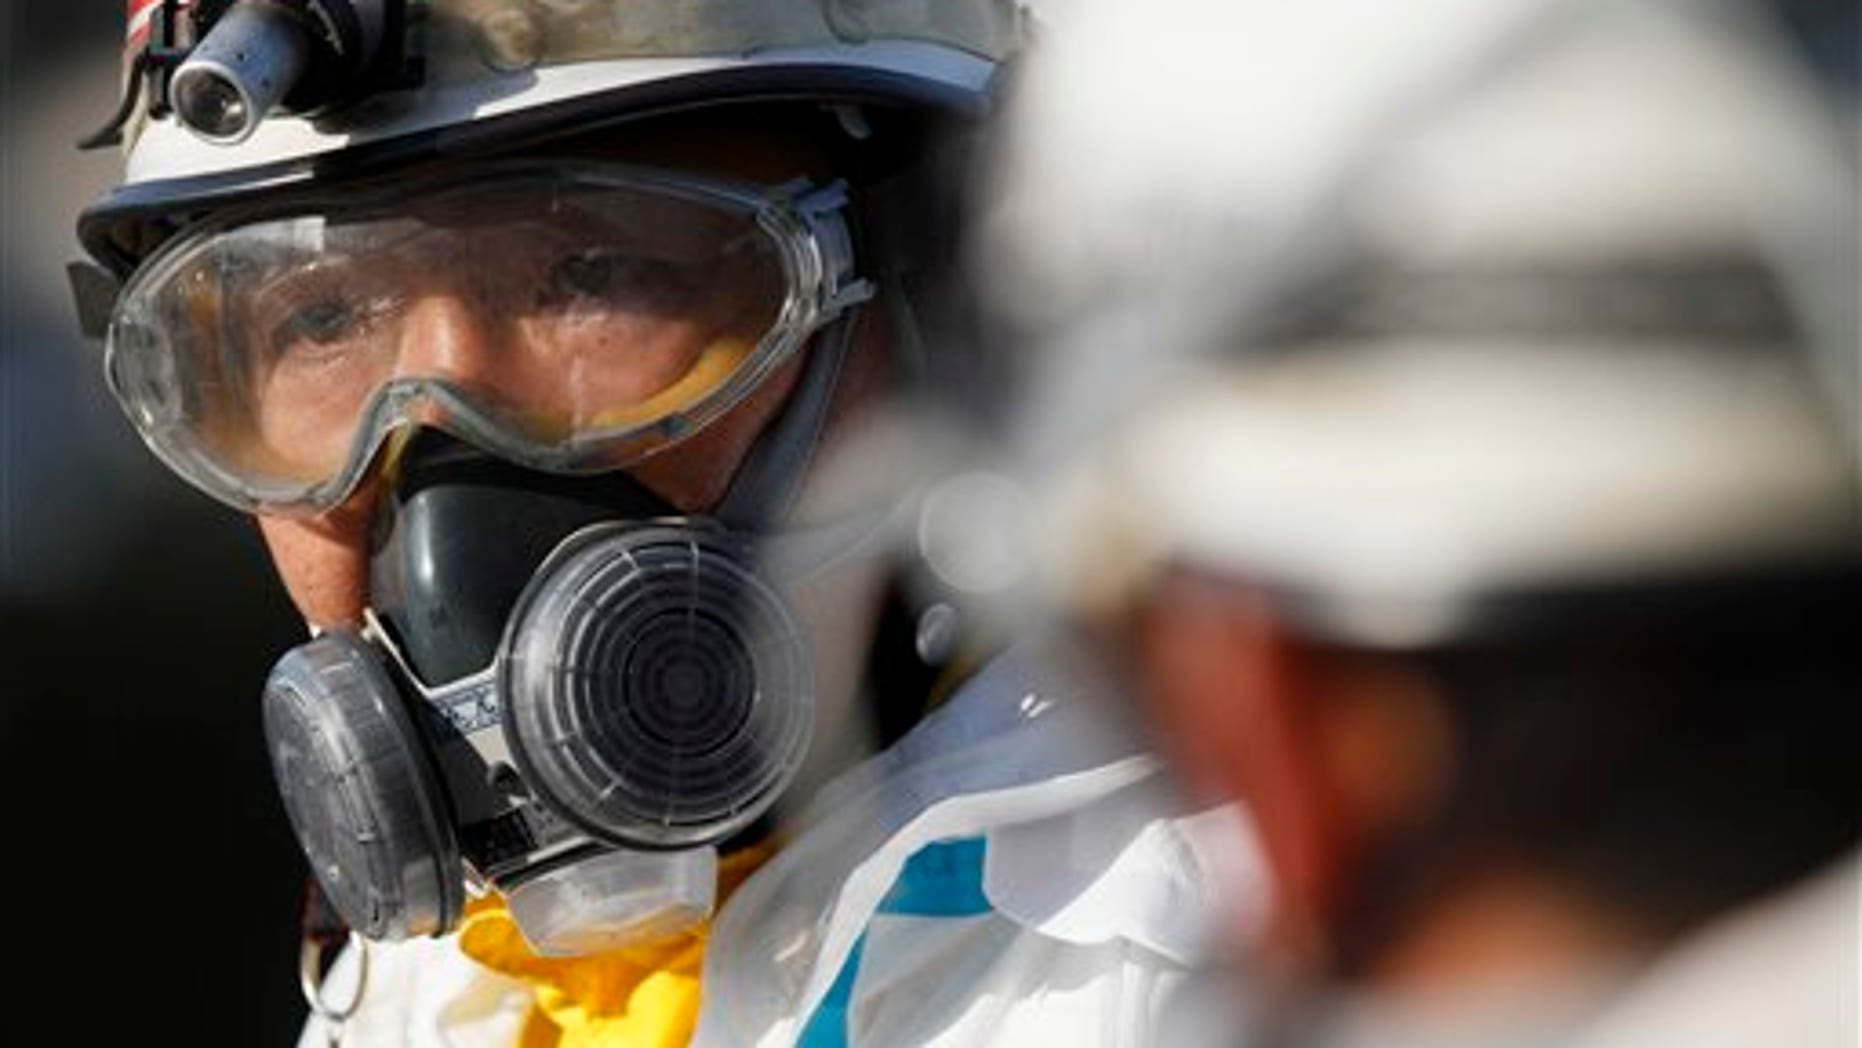 March 13: An official wears protective clothing while waiting to scan people for radiation an emergency center in Koriyama, northeastern Japan, two days after a giant quake and tsunami struck the country's northeastern coast. (AP)